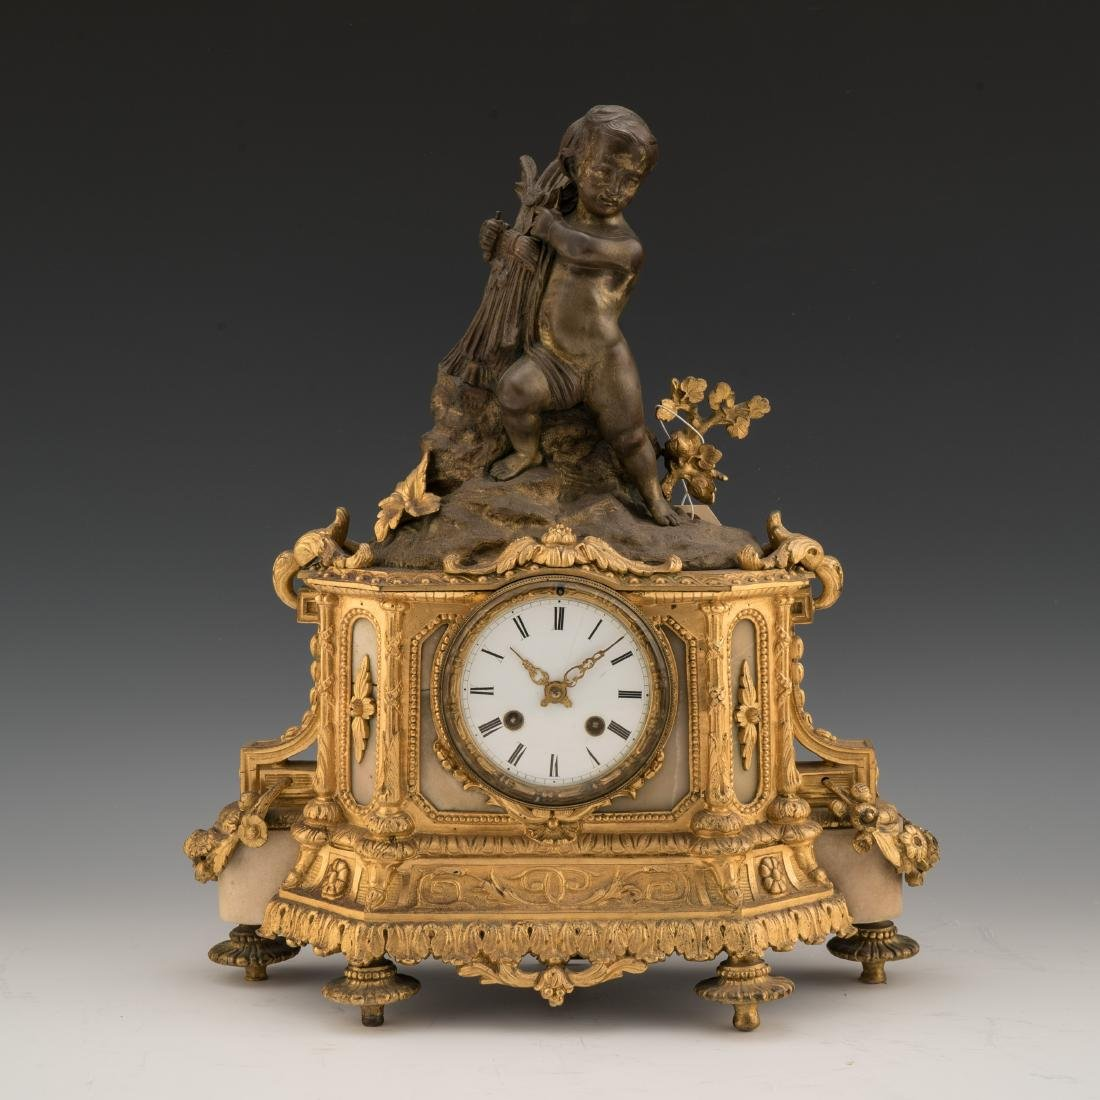 19TH CENTURY LOUIS XVI-STYLE GILT AND PAINTED BRONZE